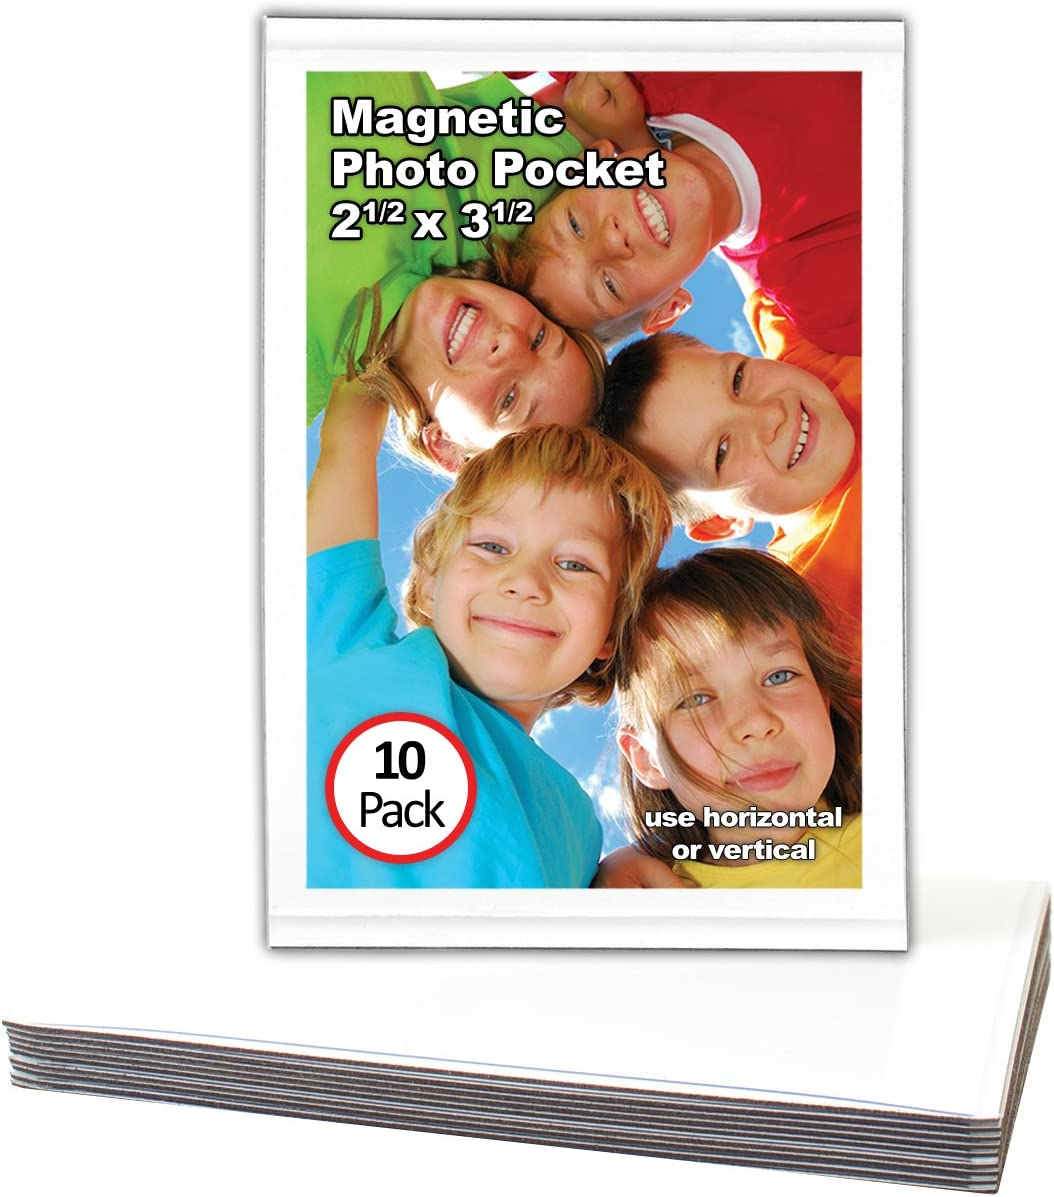 24 MAGNETIC PHOTO POCKETS..SIZE 2.5 X 3.5..., PICTURES SNAPSHOTS ALBUMS